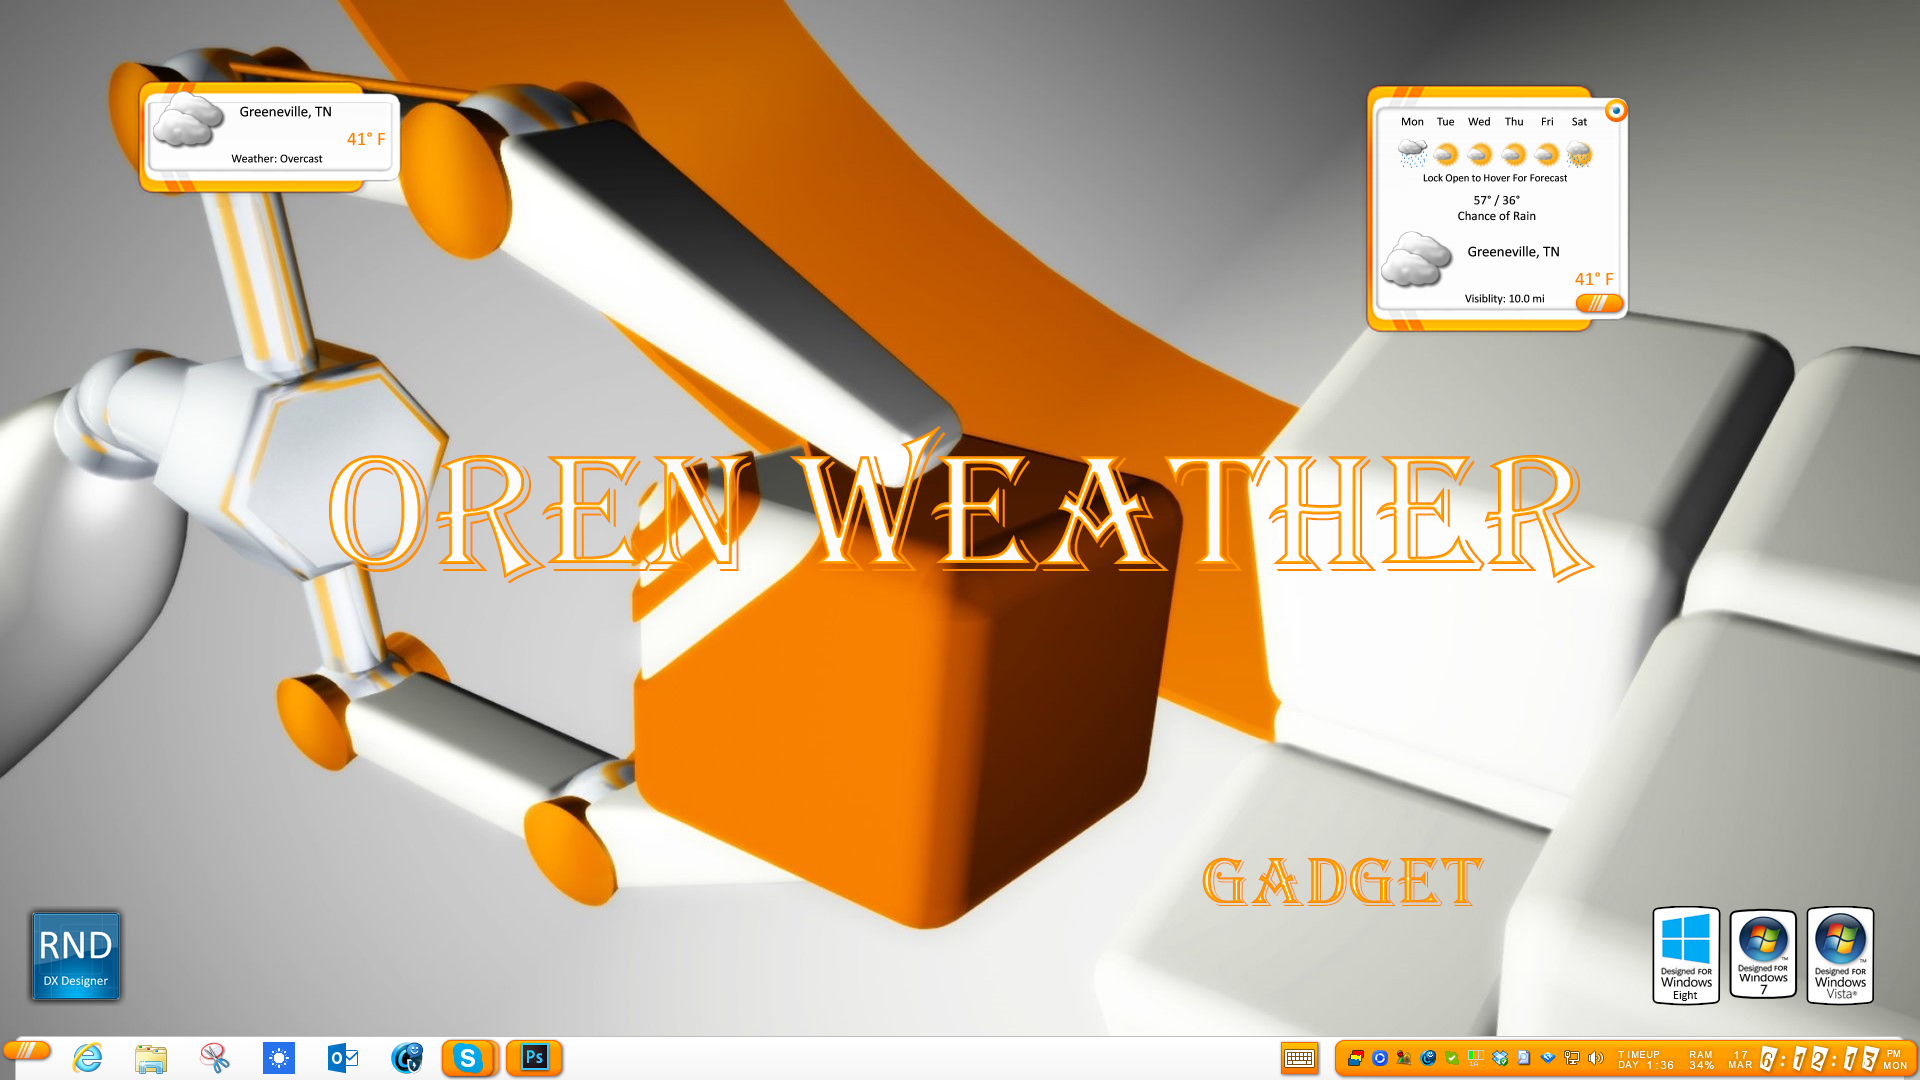 Oren Weather Gadget